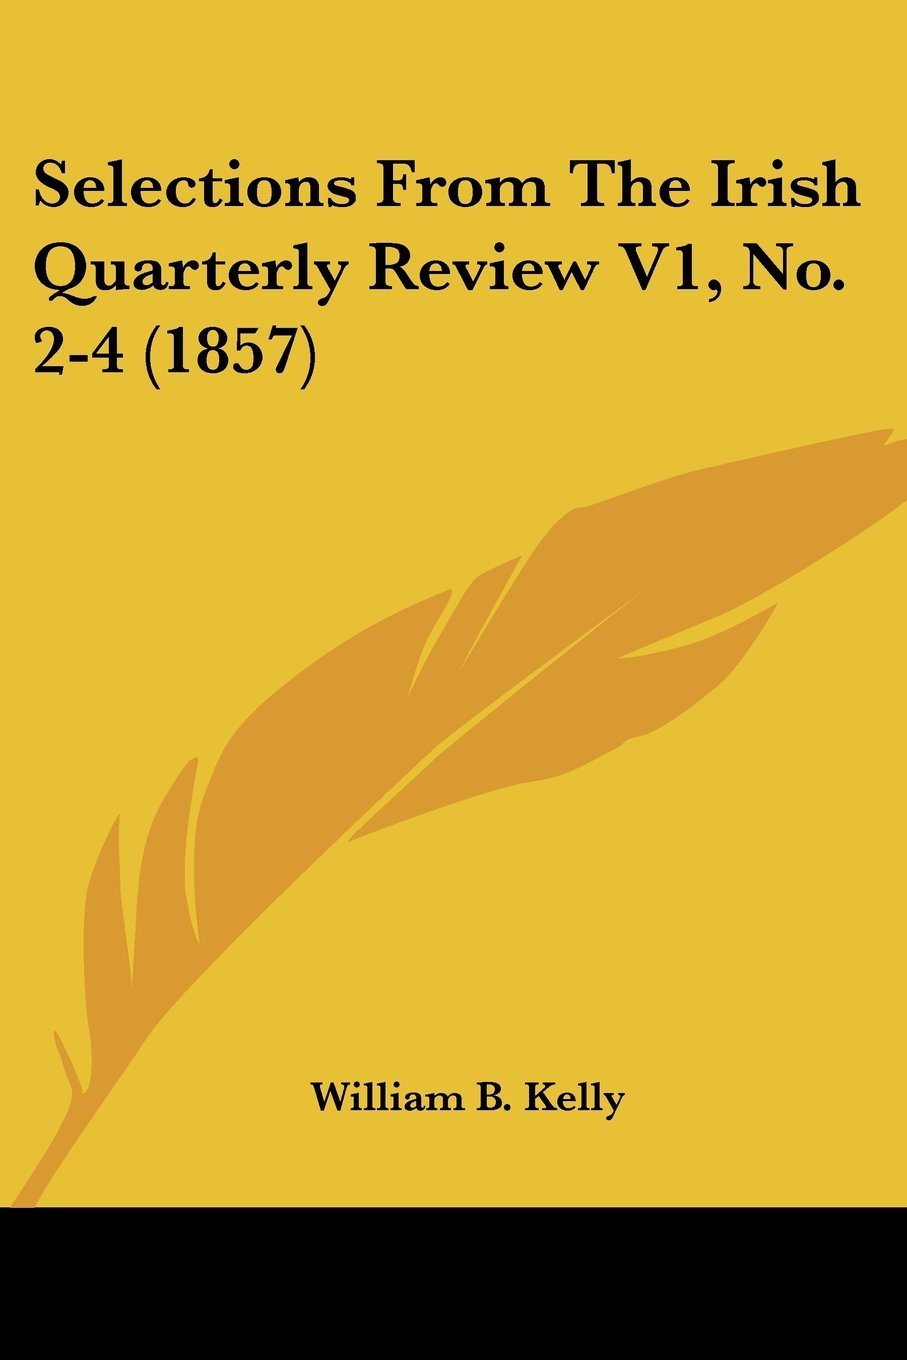 Selections From The Irish Quarterly Review V1, No. 2-4 (1857) ebook